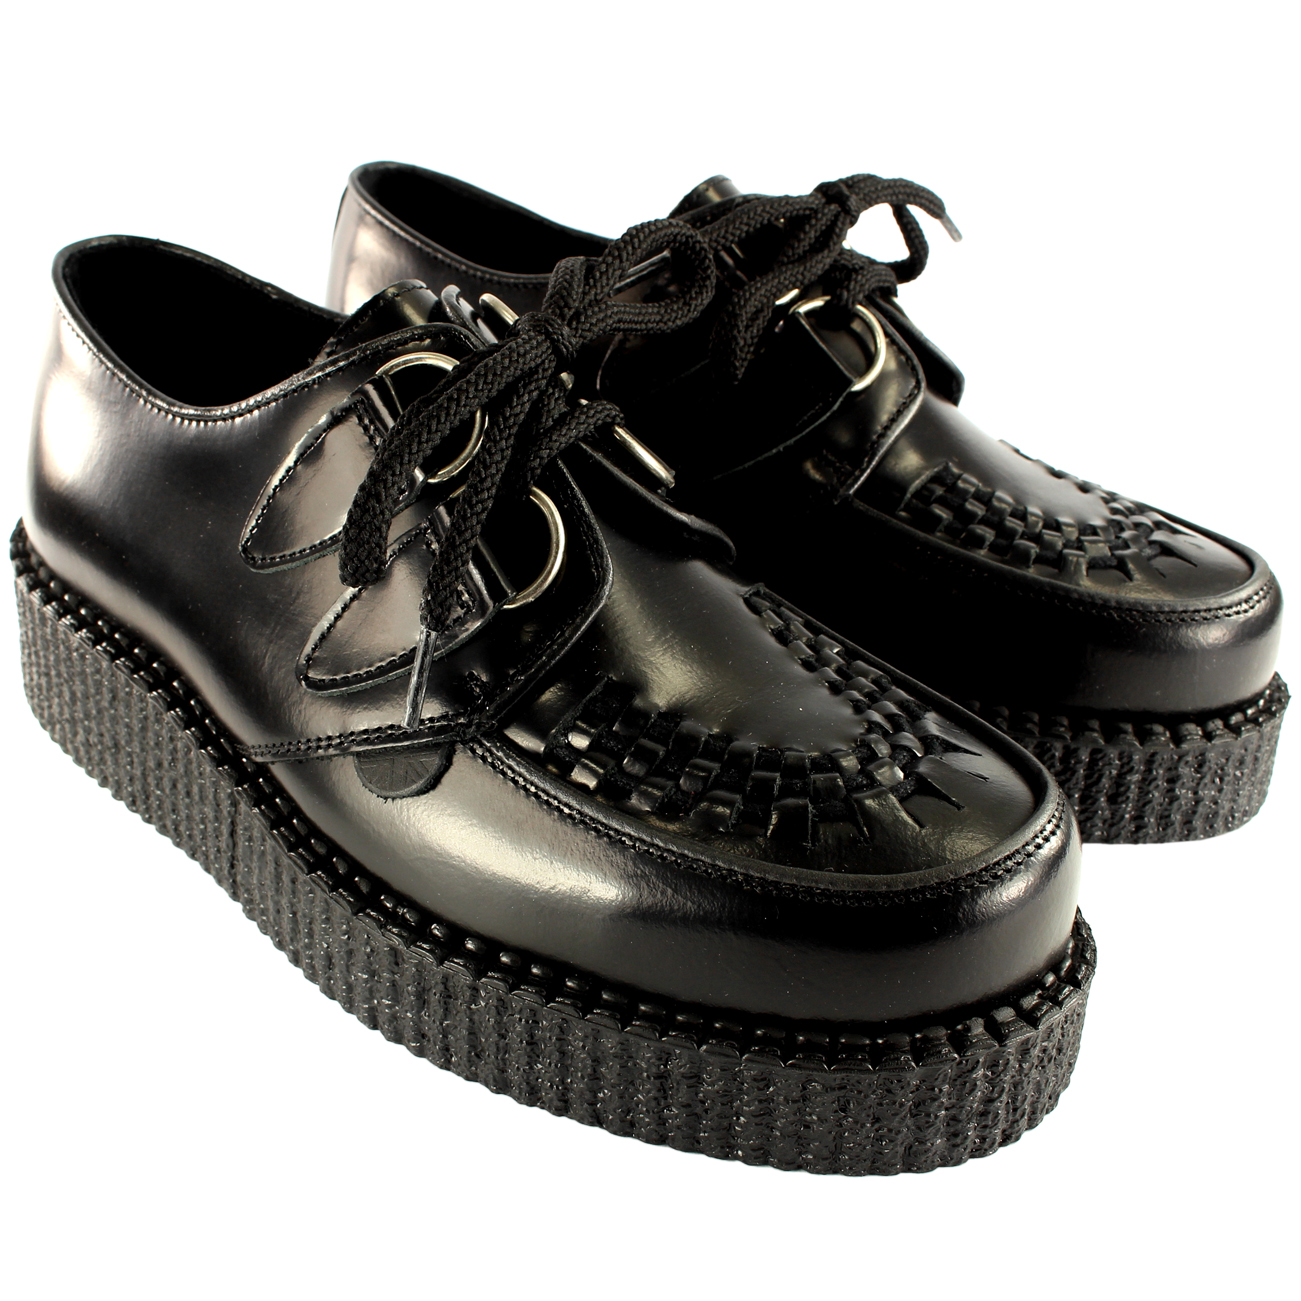 Shop Creepers Women's Boots online, browse through our selection of Creepers Women's Boots at coolmfilehj.cf